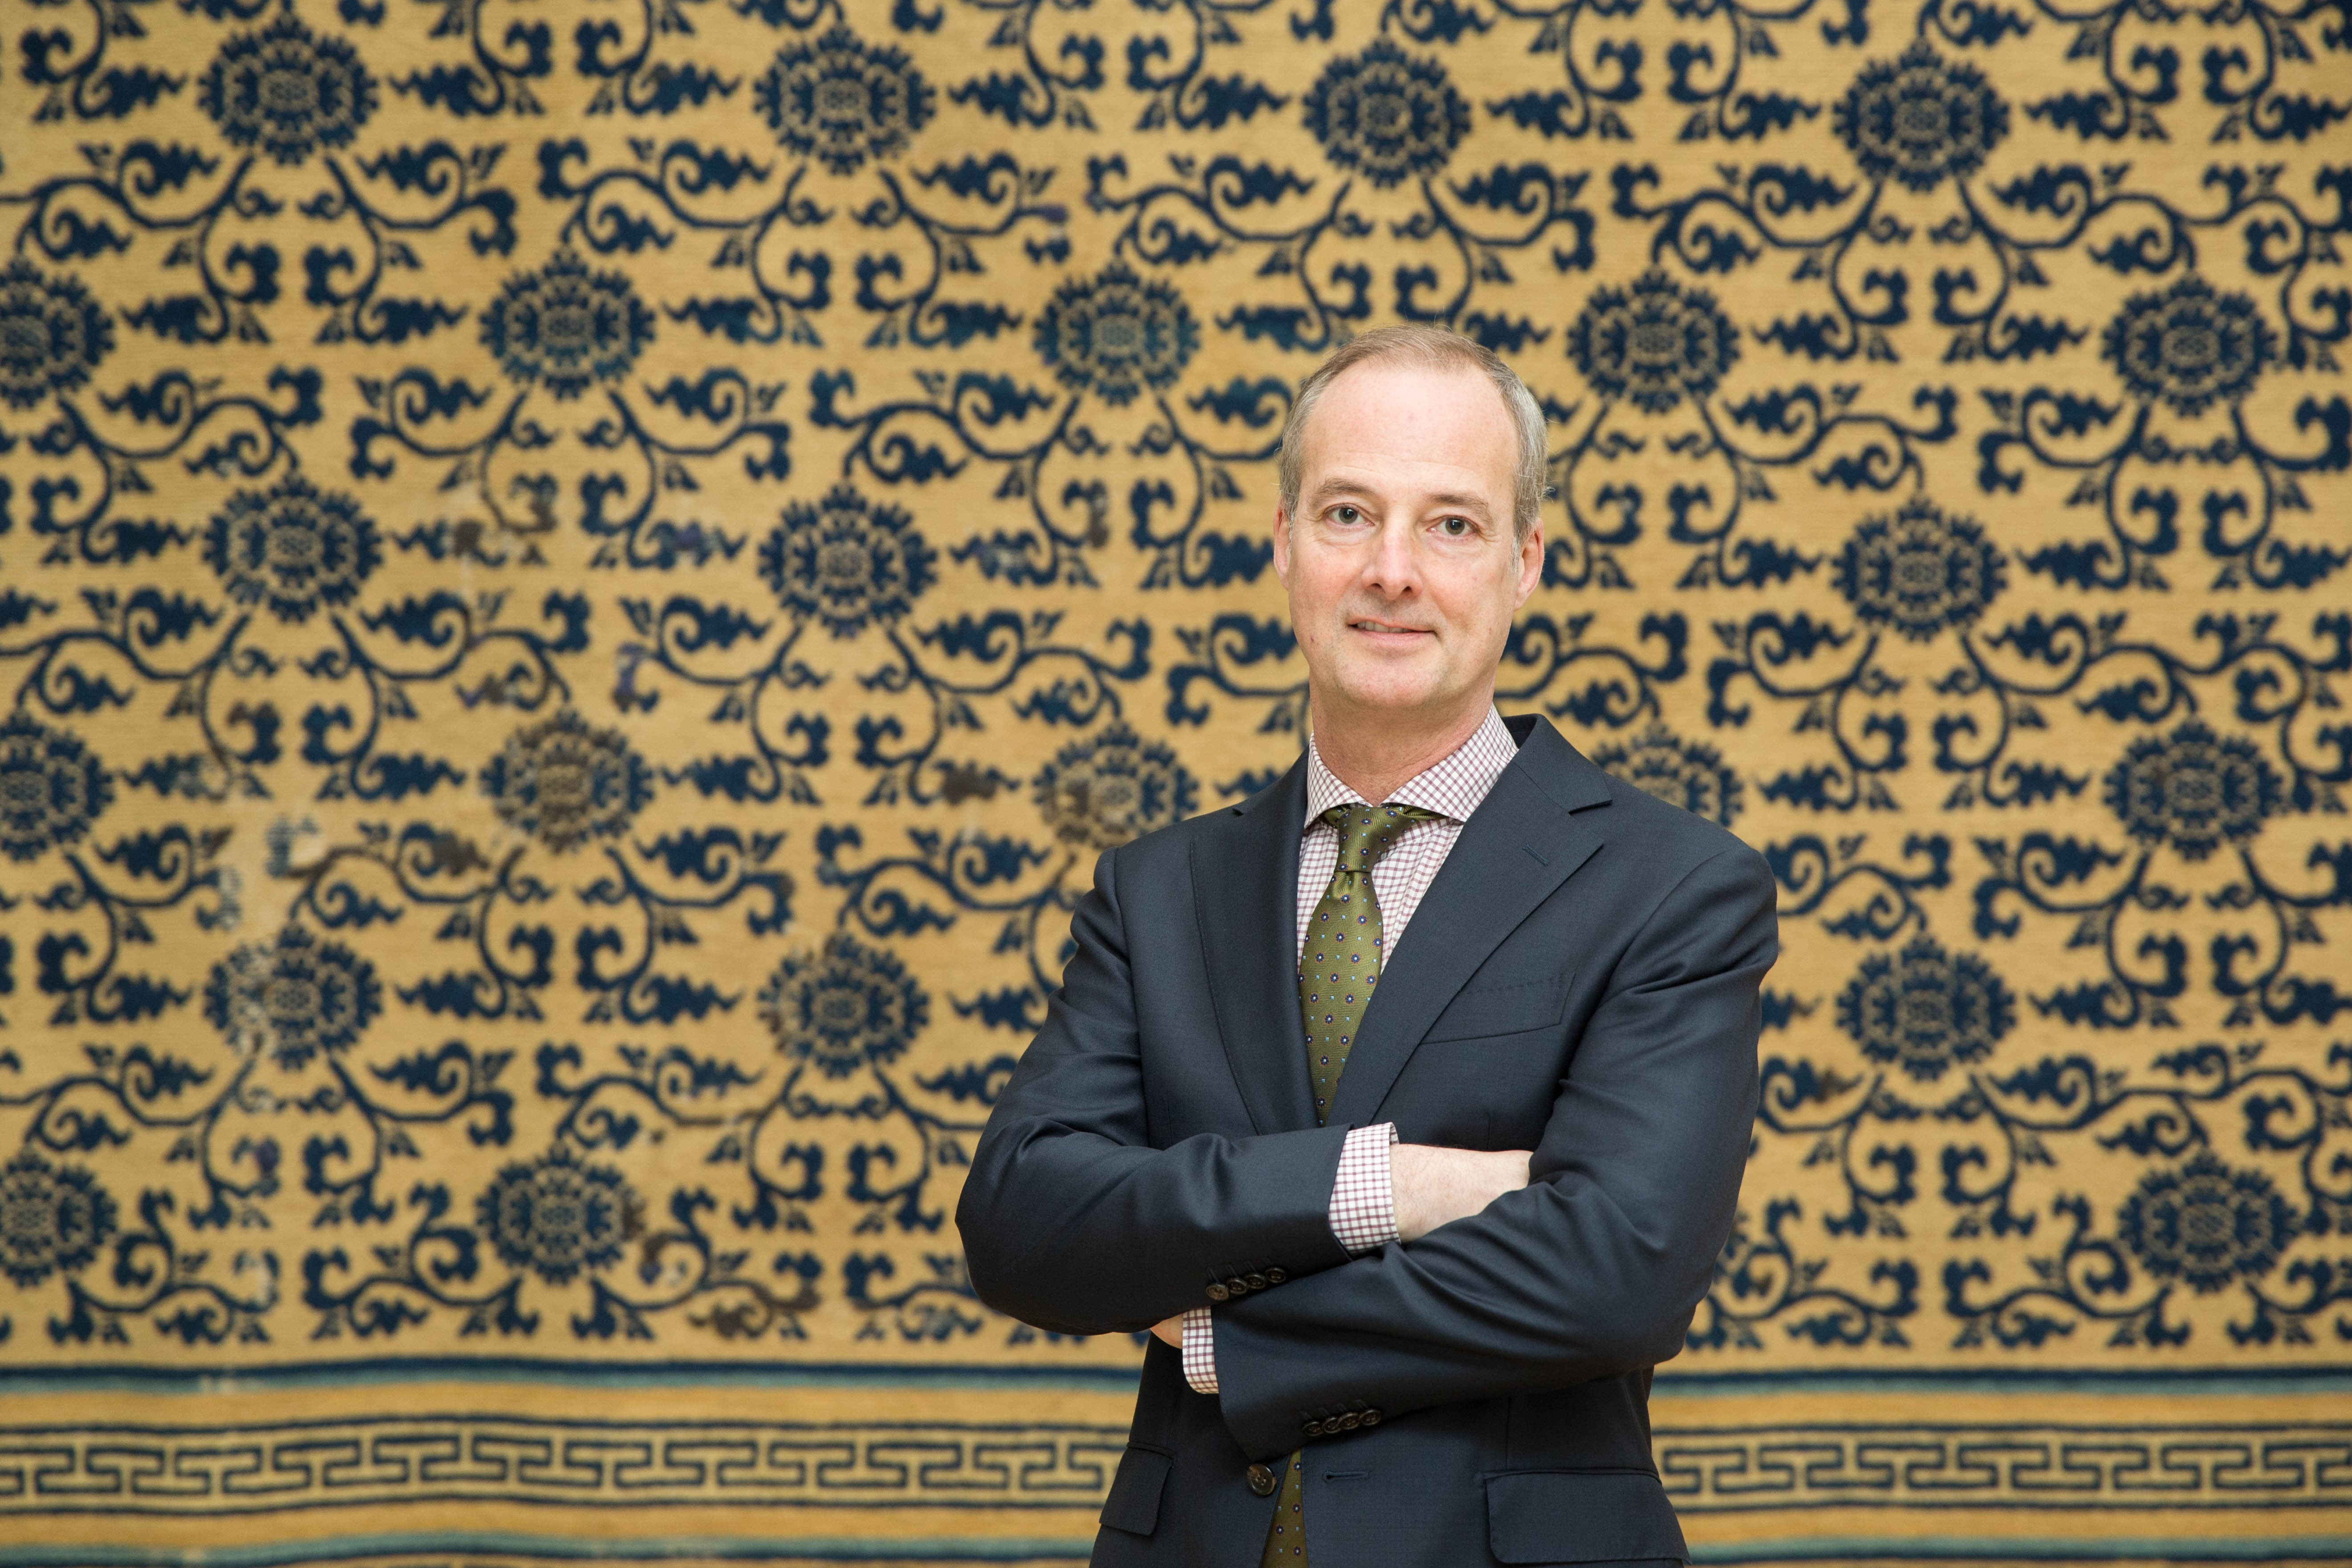 Lee Armstrong Talbot, a curator